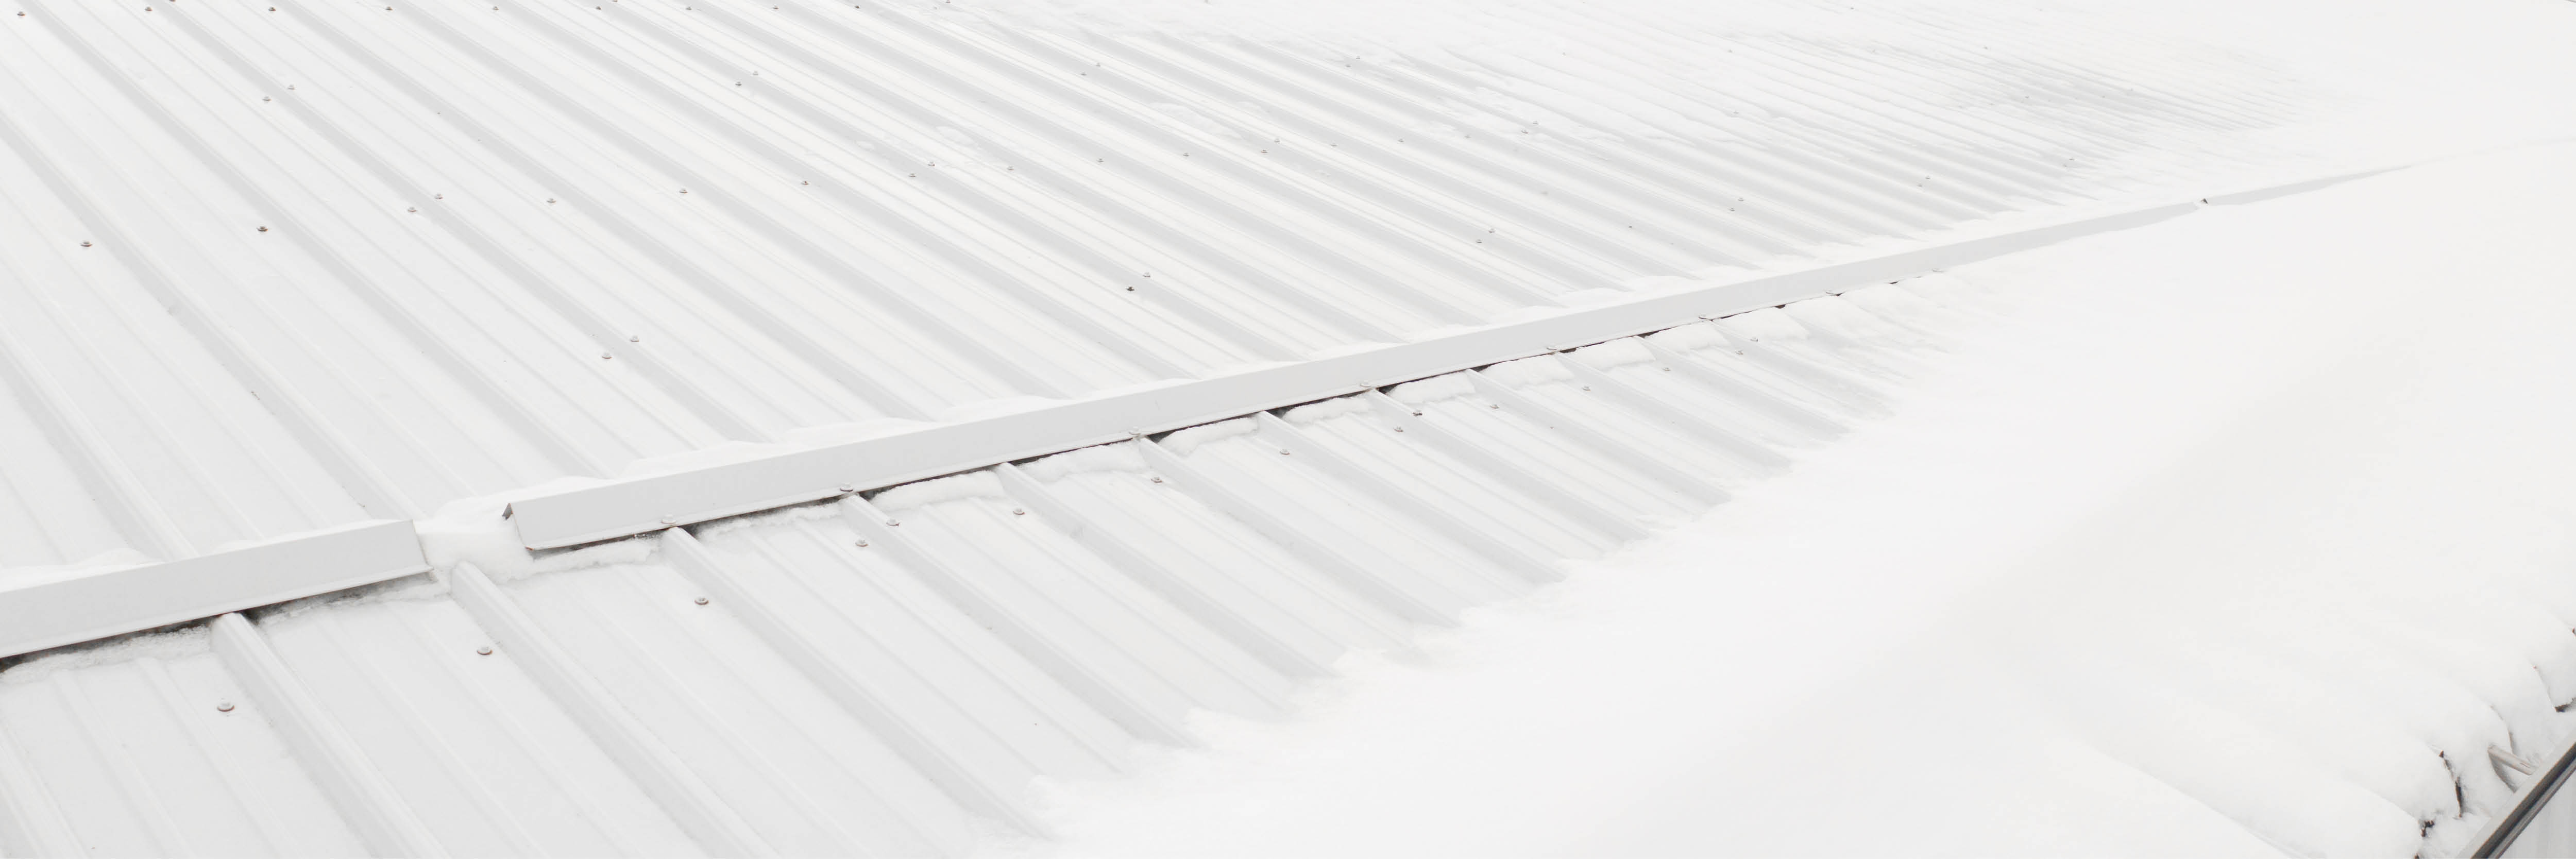 Why Are Pole Barn Snow Guards Important?